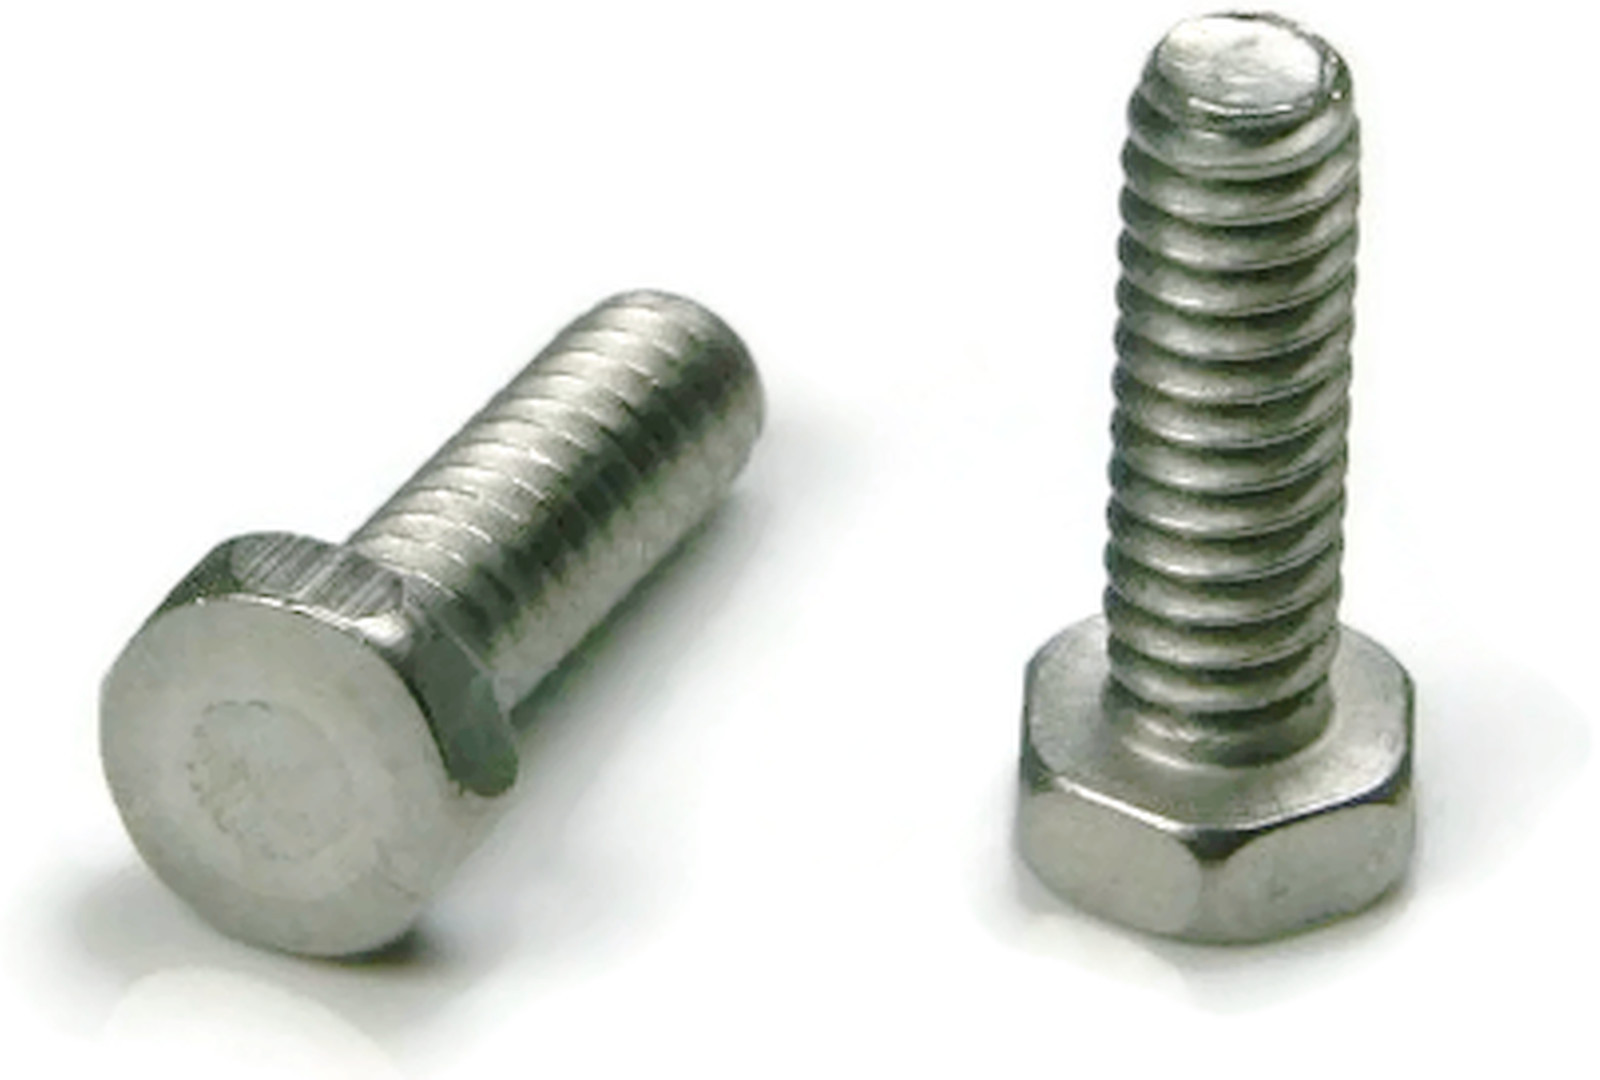 8-32 X 5//8 No Slot Hex Head Machine Screw 18-8 Stainless Steel Package Qty 100